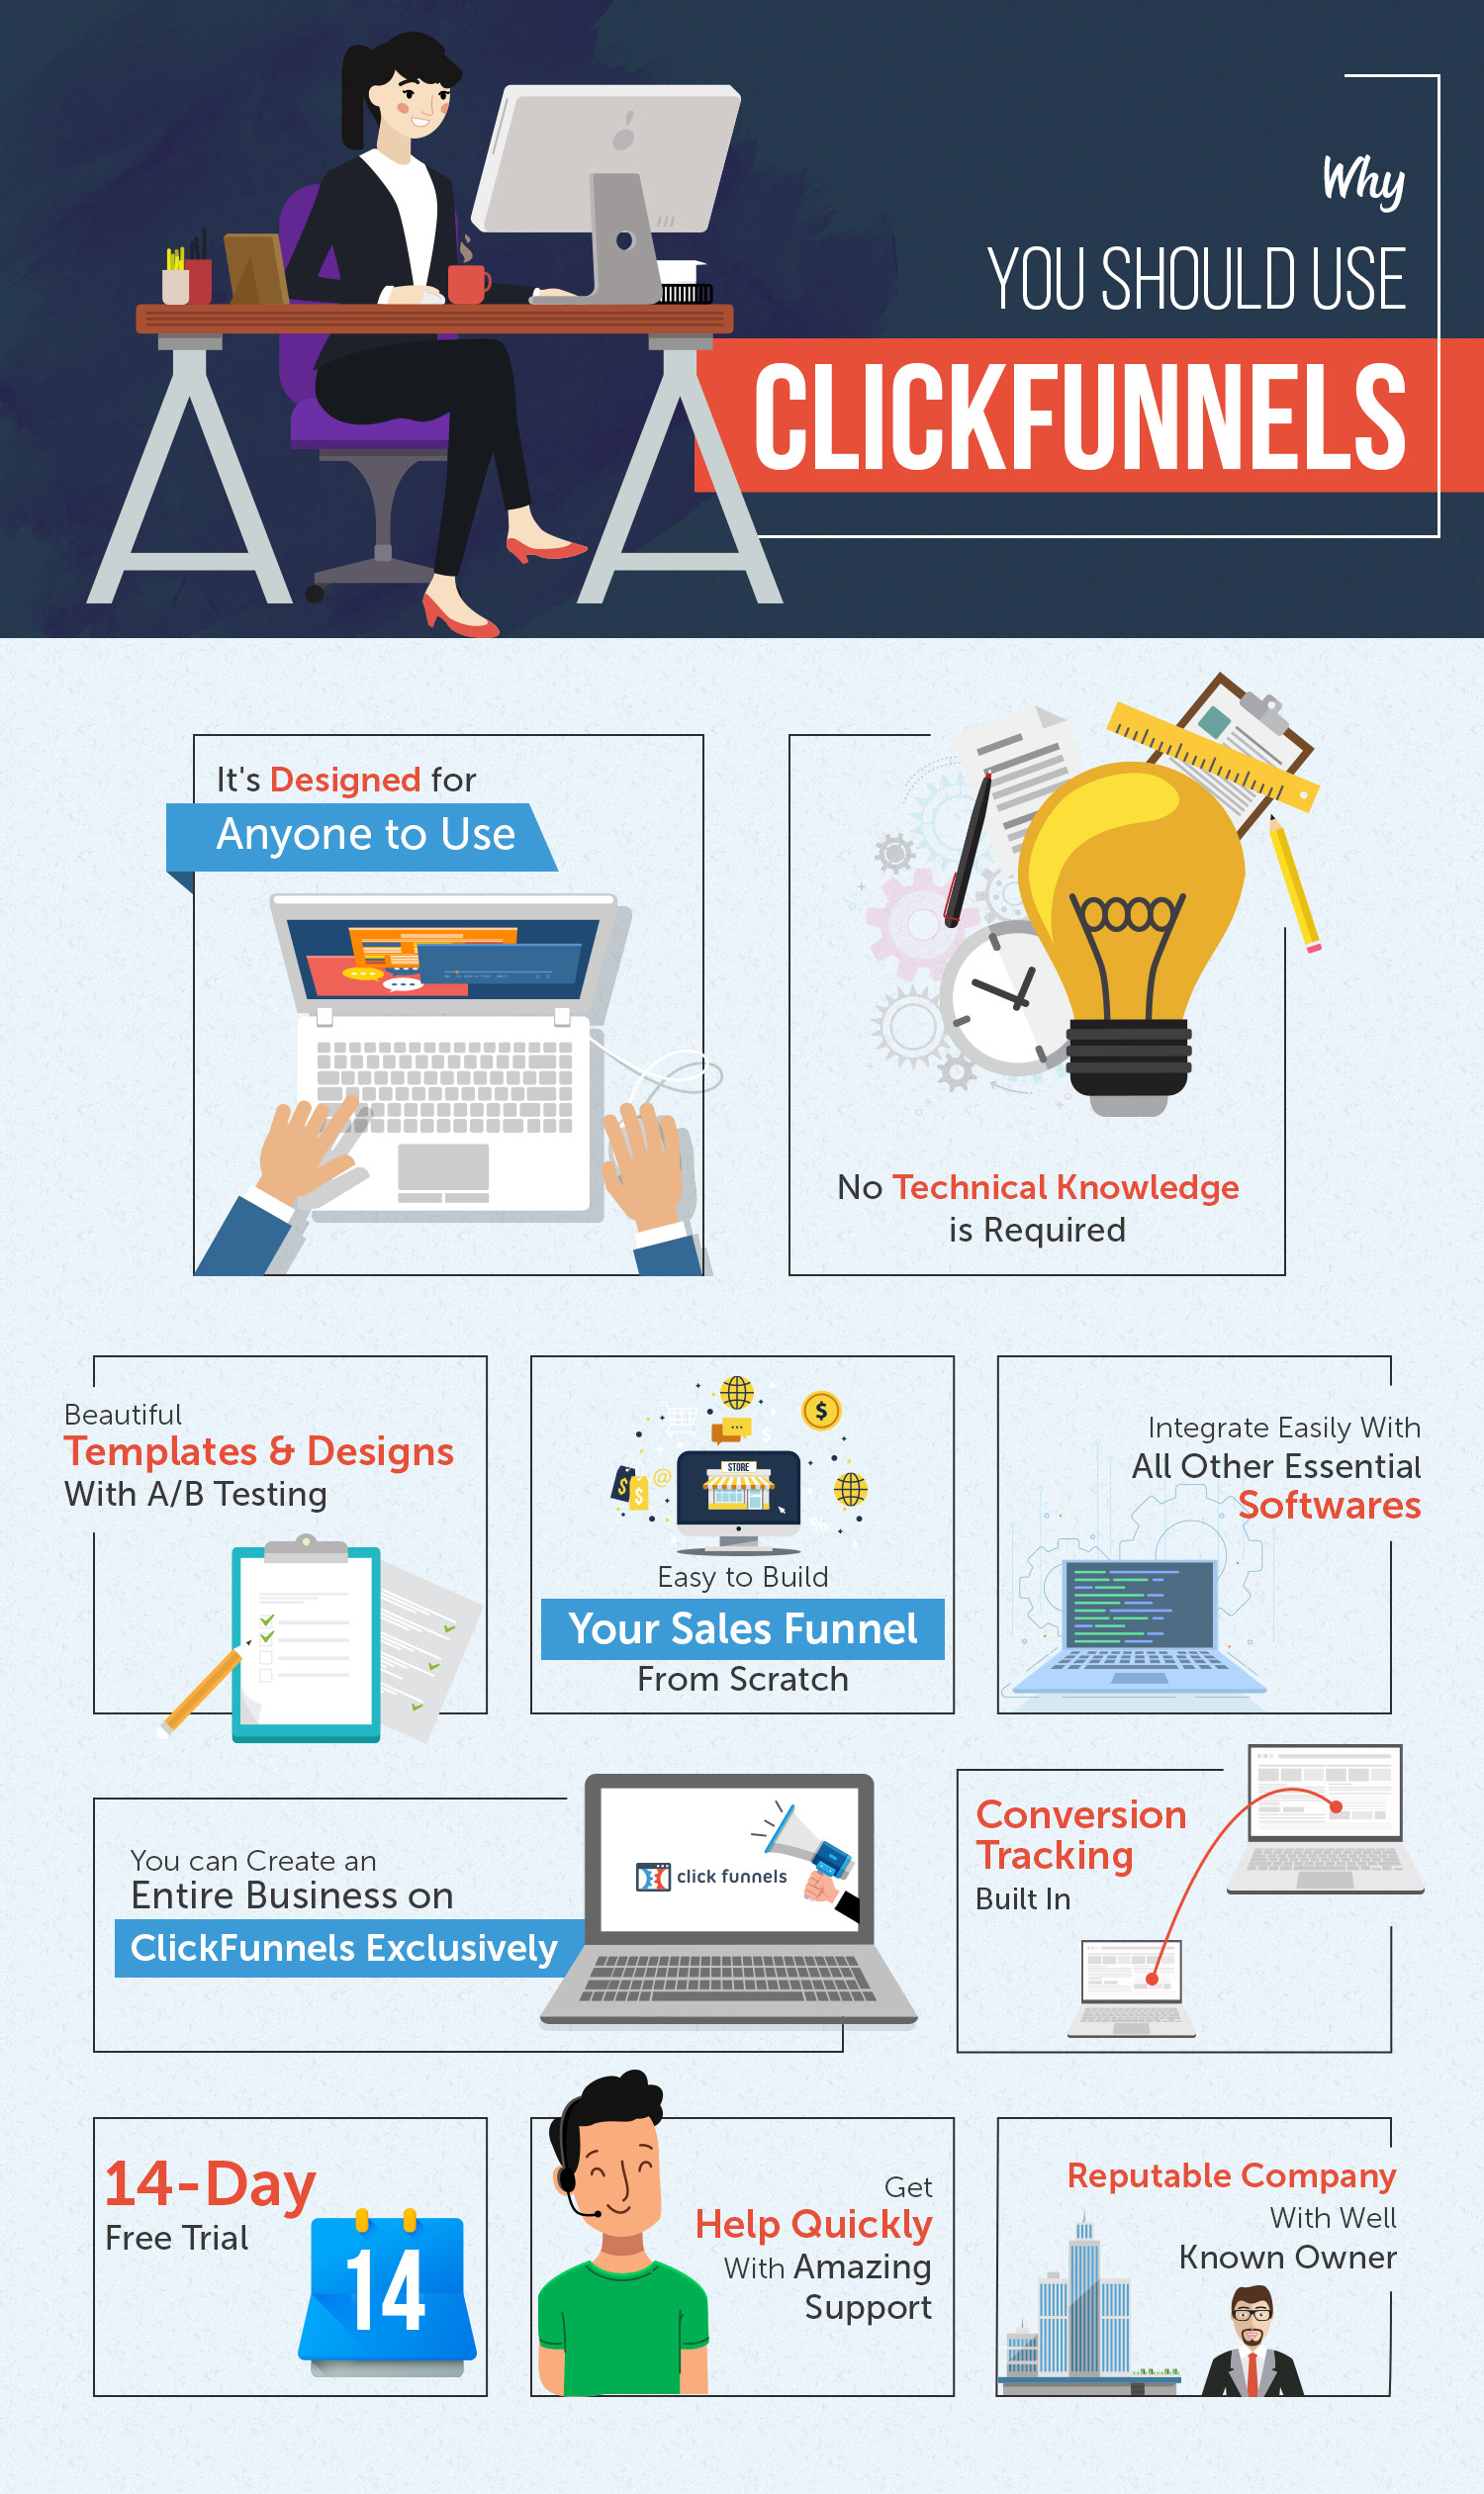 Why You Should Use ClickFunnels Infographic